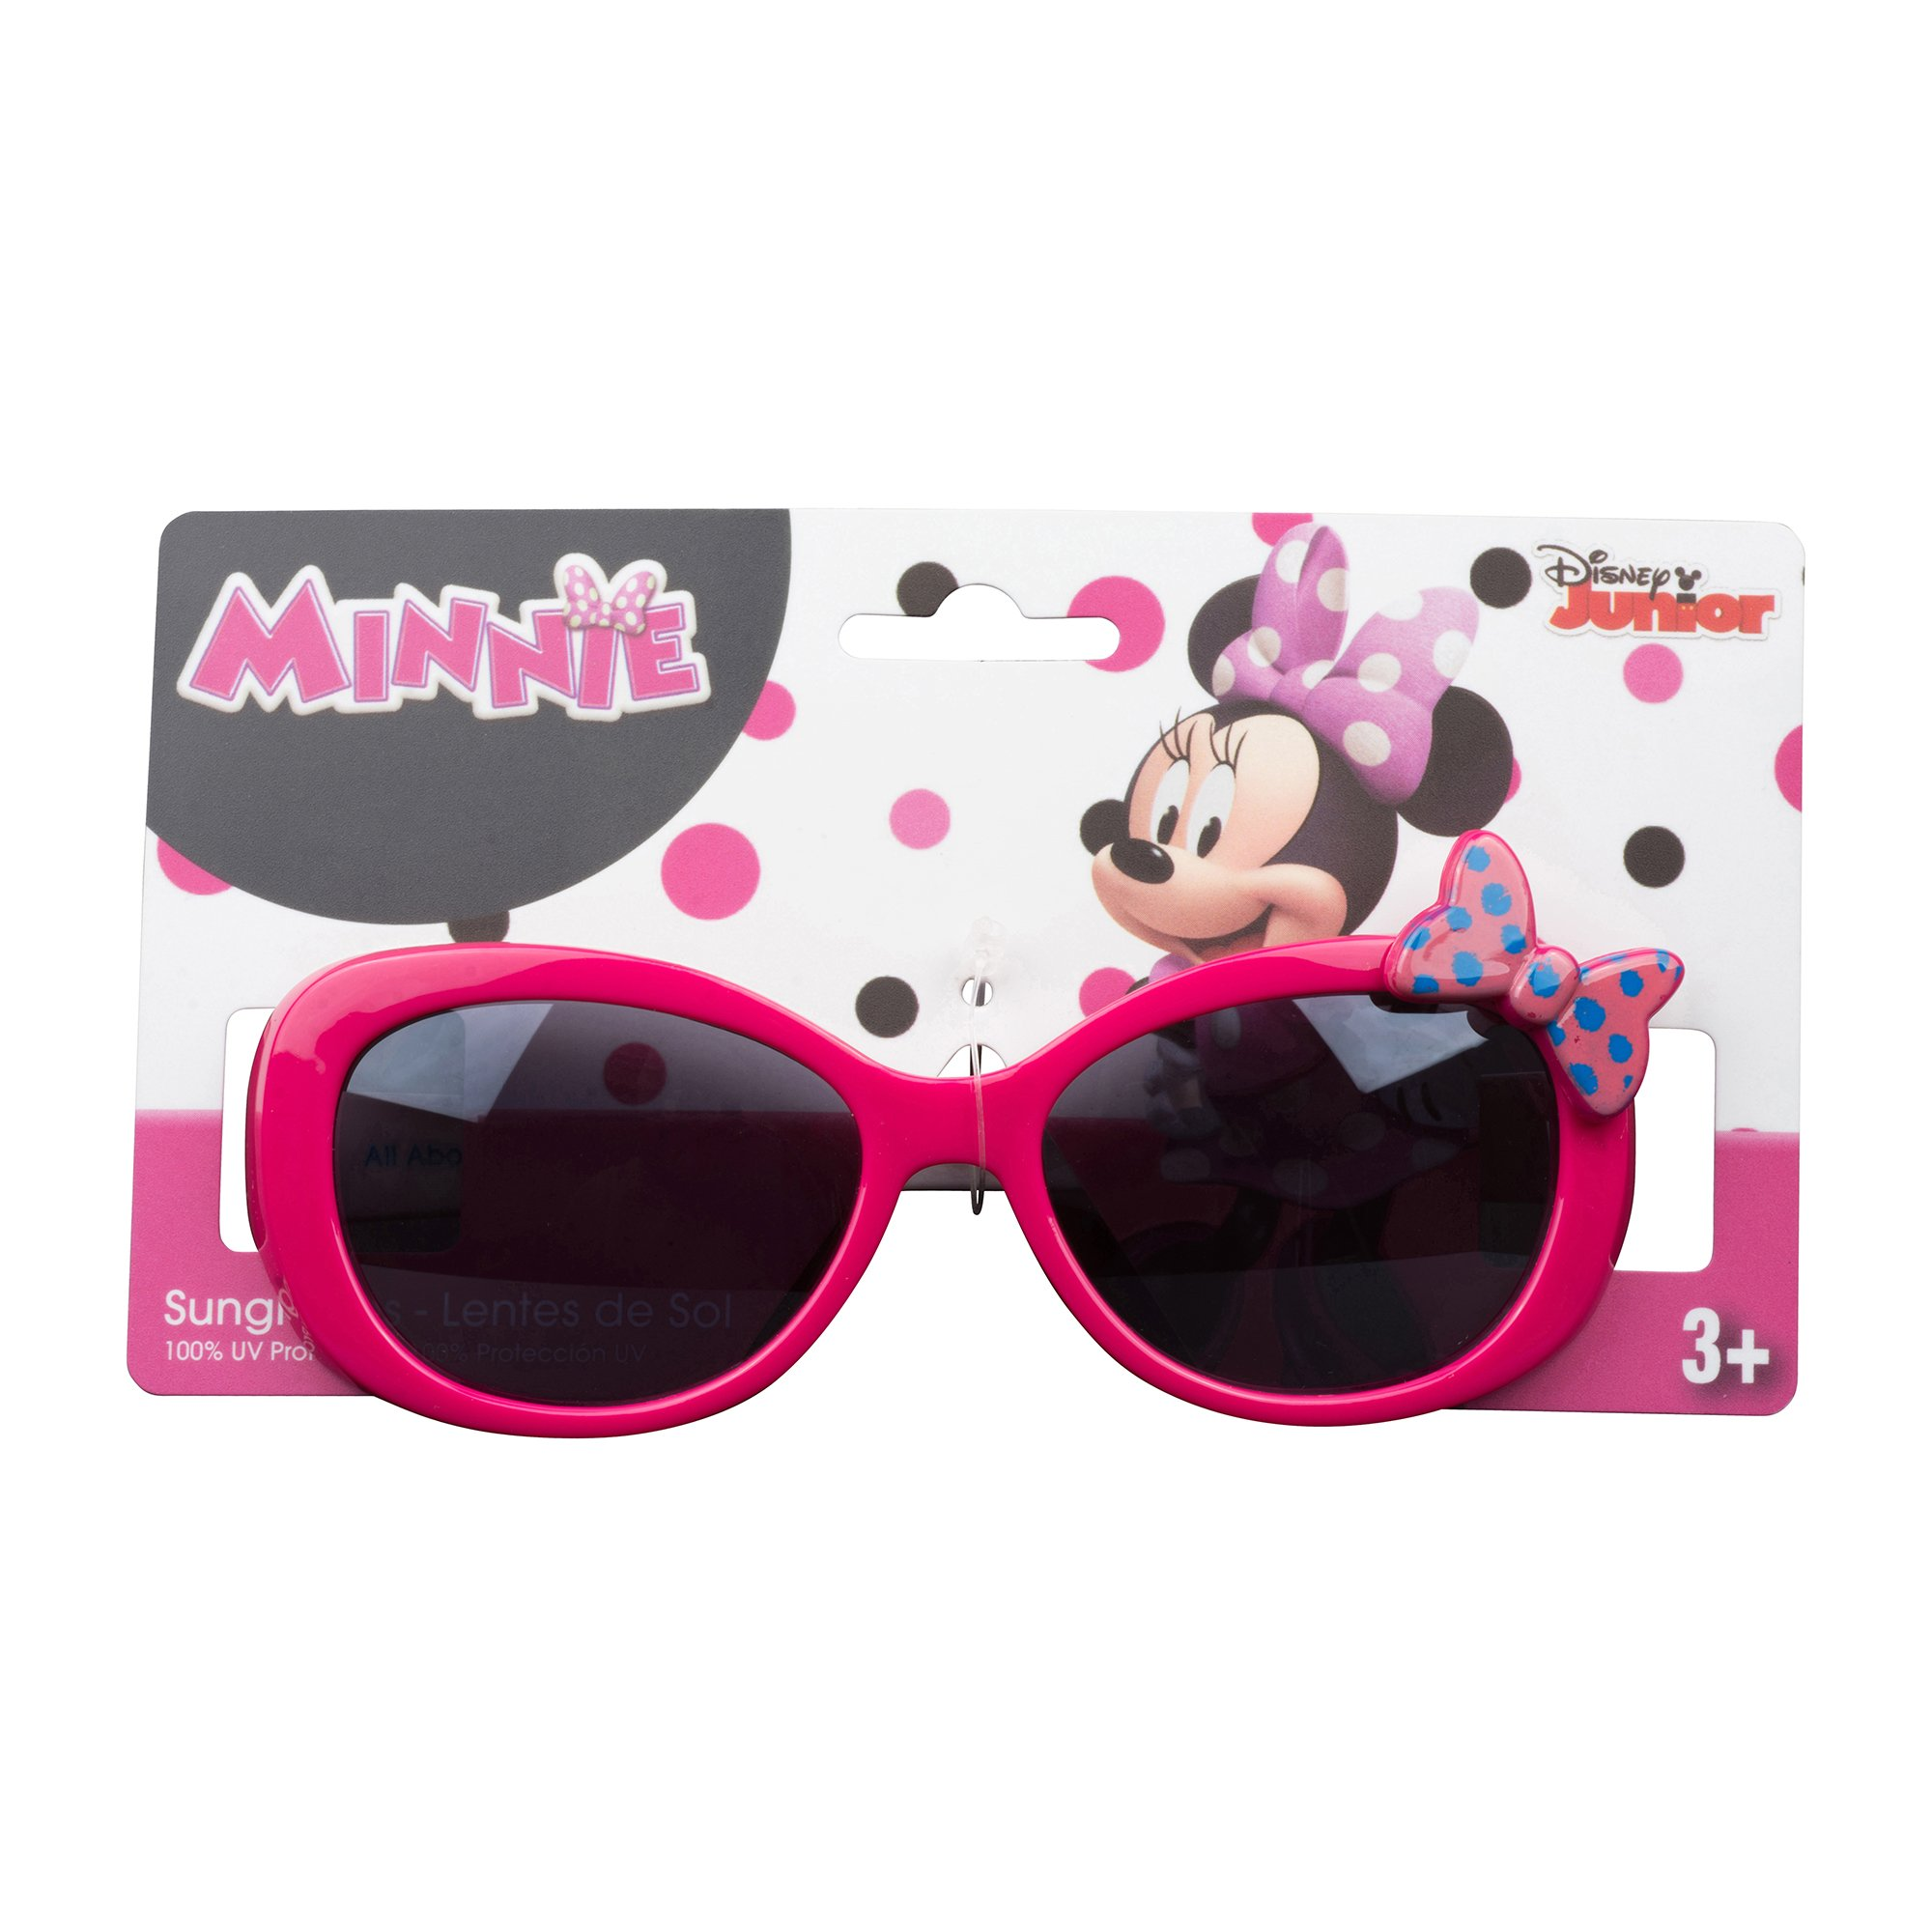 KIDS SUNGLASSES- GIRLS DISNEY 100% UV, MINNIE, MOANA, PRINCESS